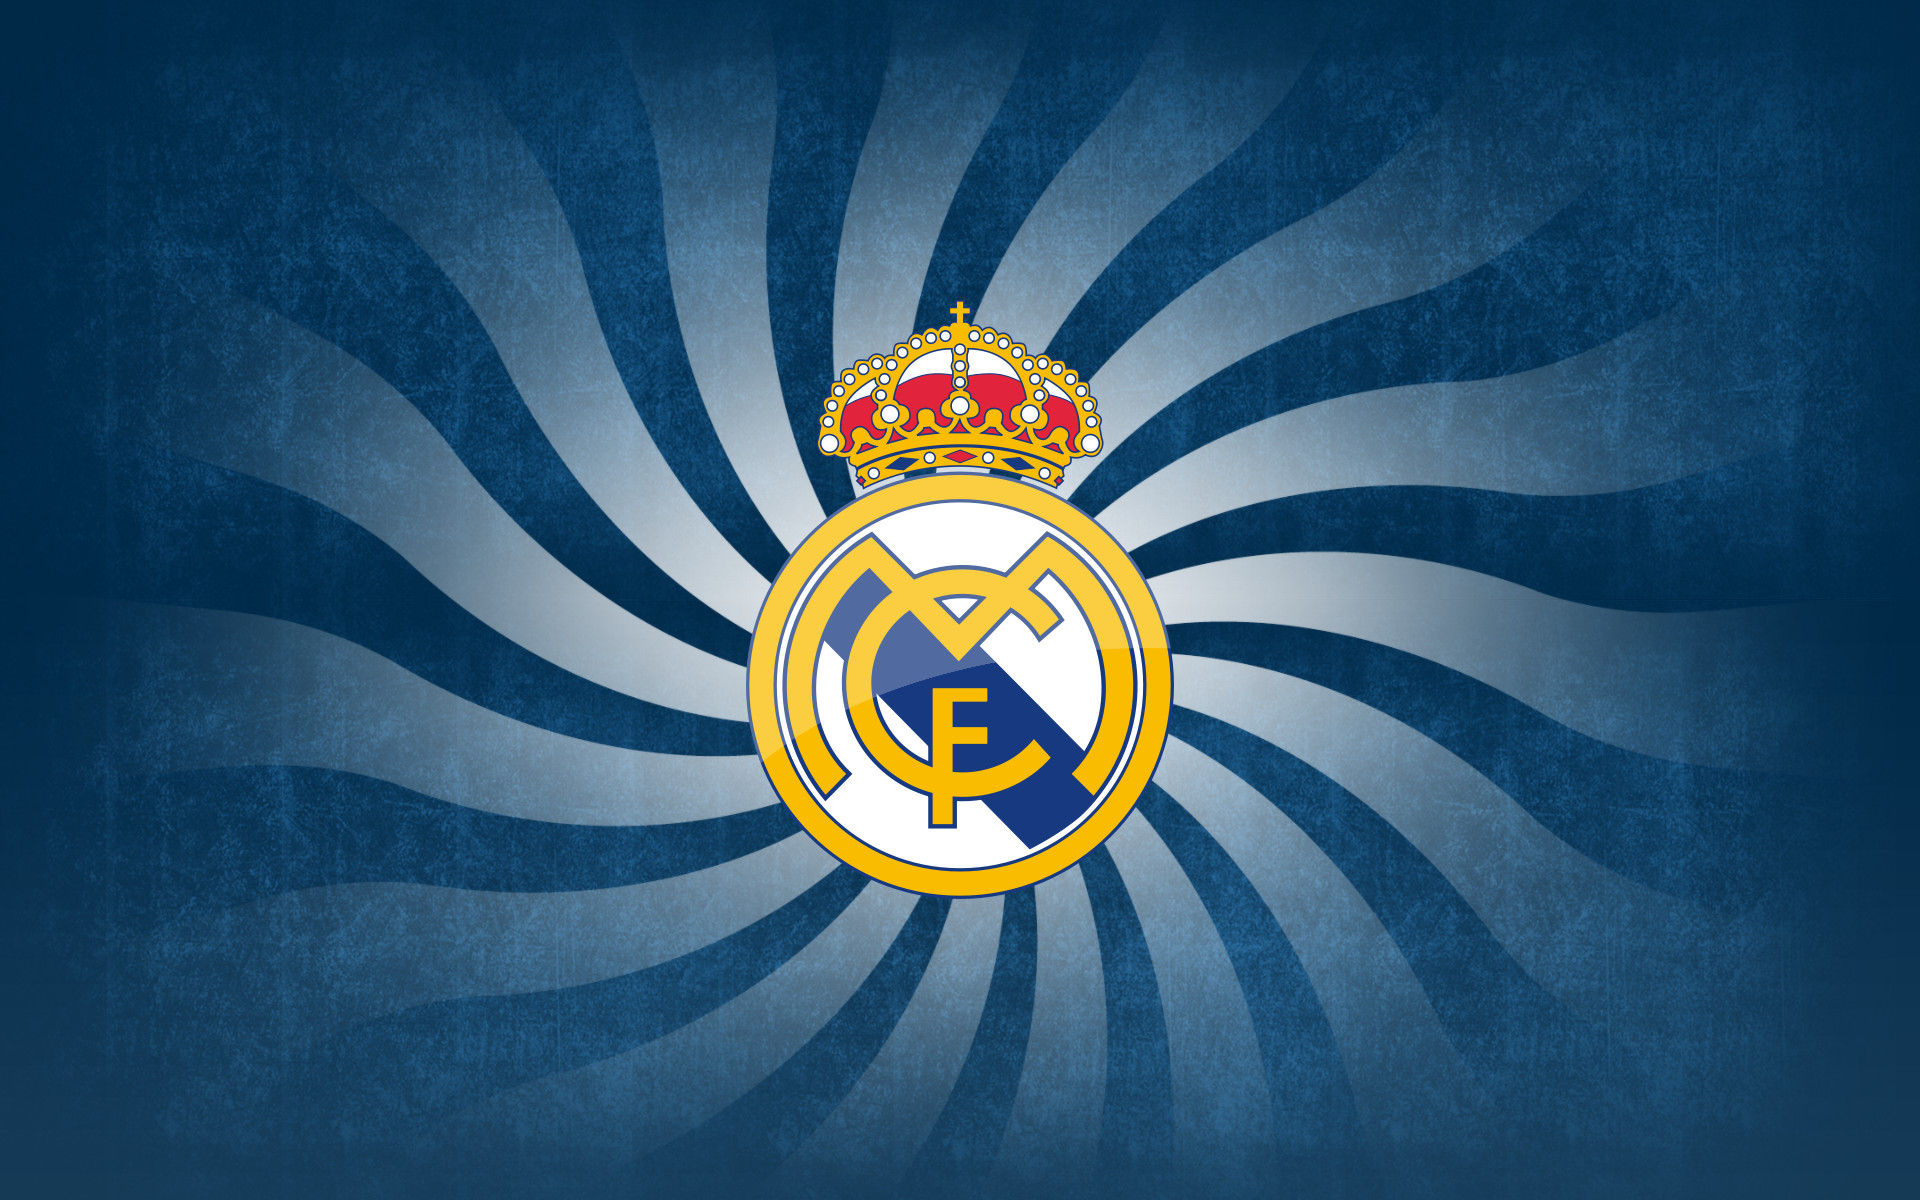 Res: 1920x1200, Real Madrid C.F. Wallpapers 13 - 1920 X 1200